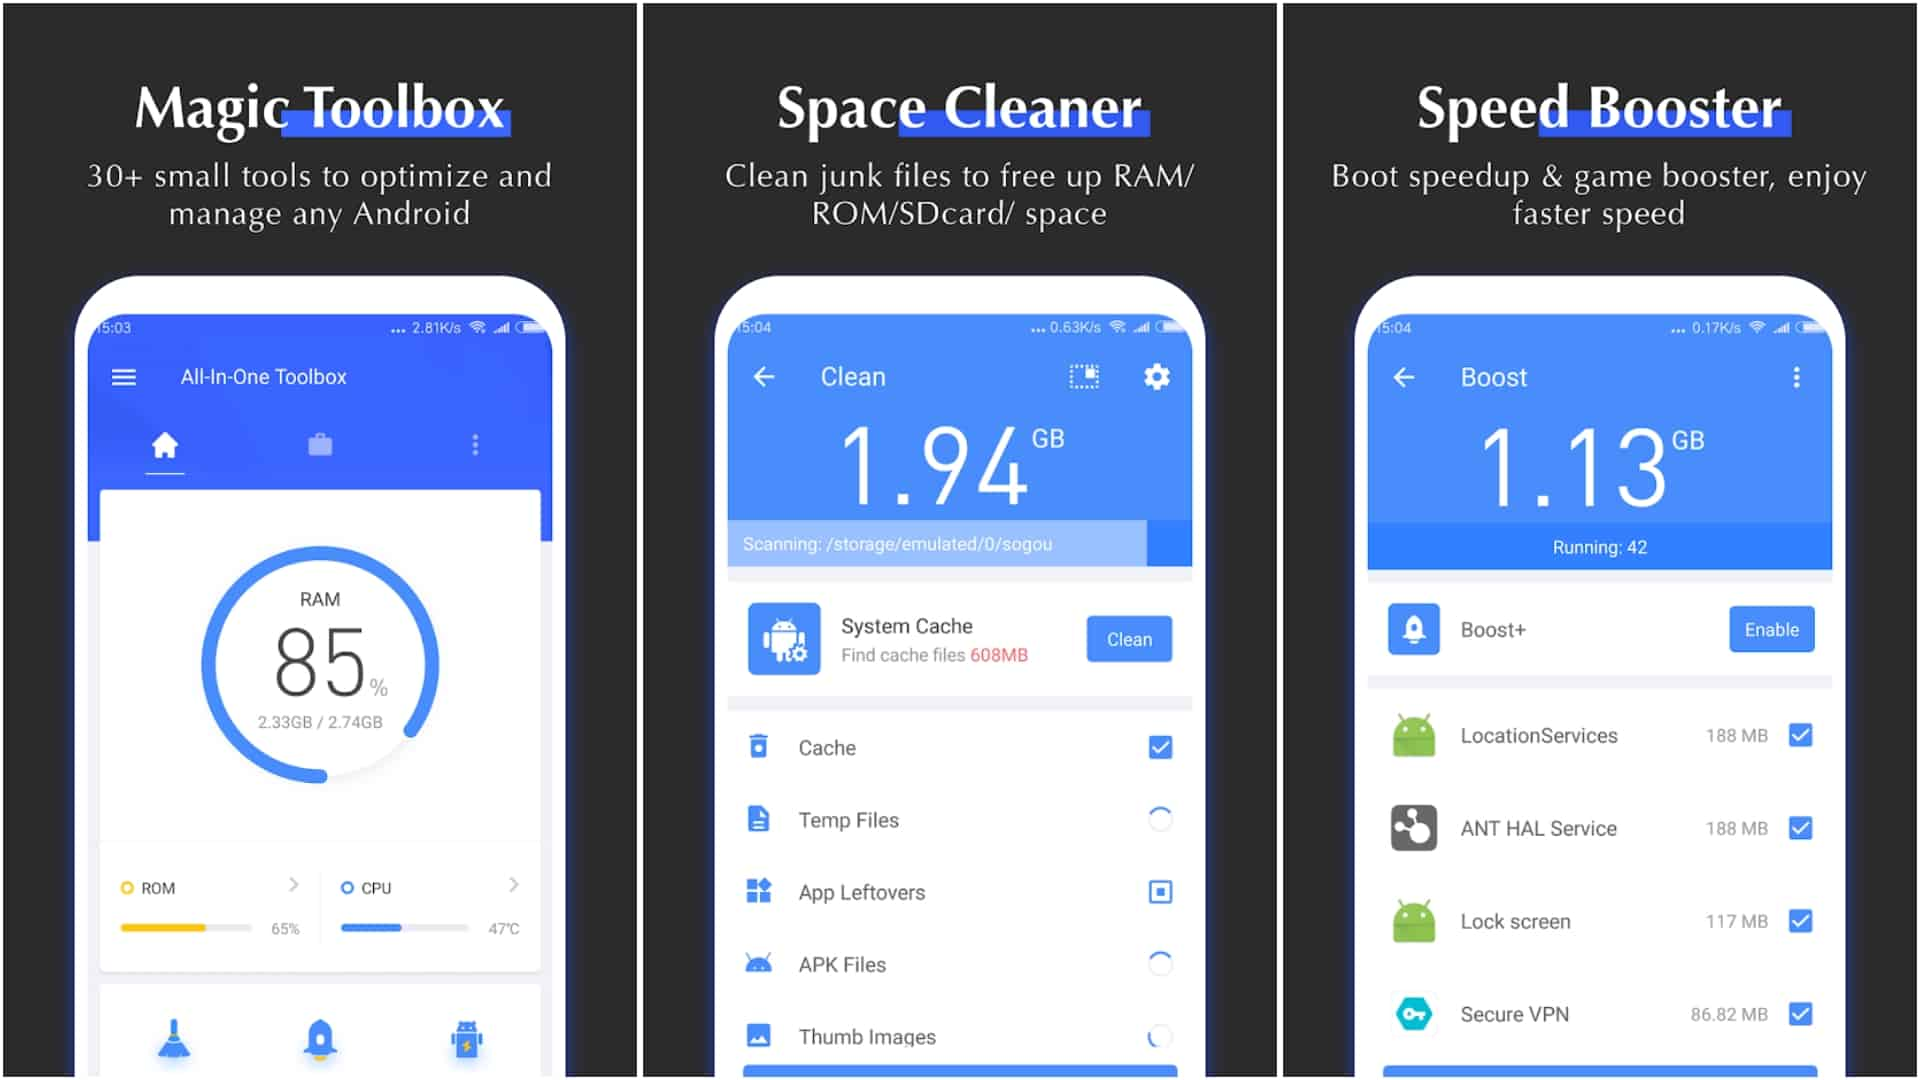 All In One Toolbox app image May 2020